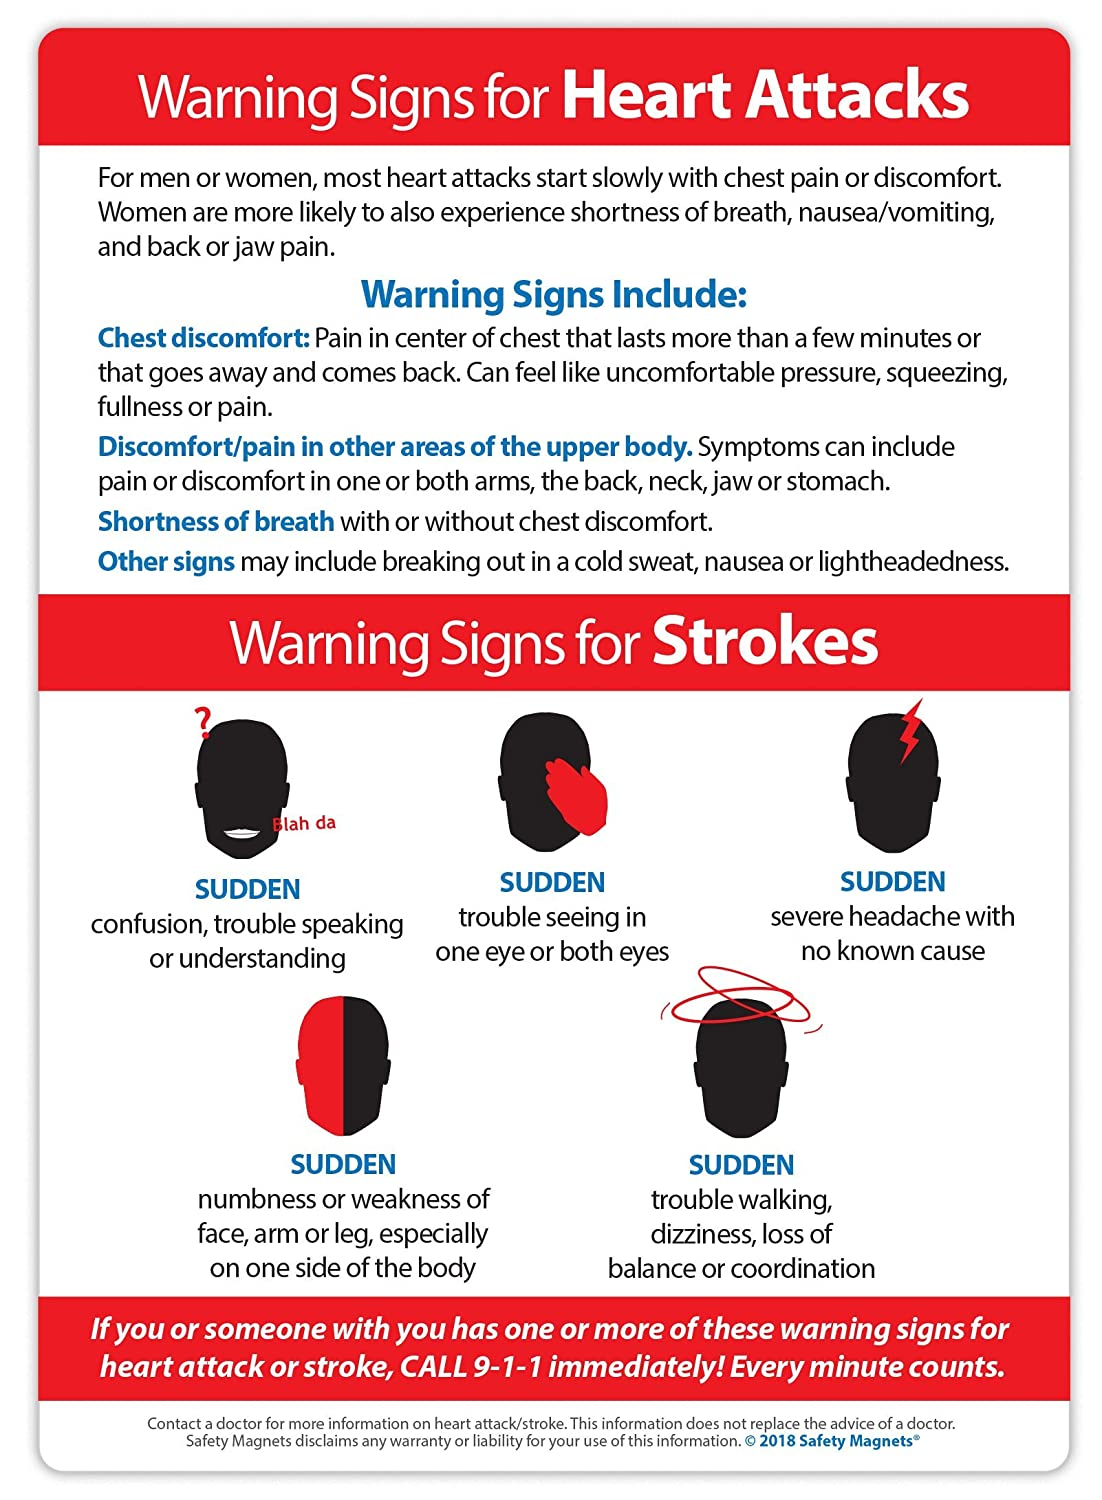 Heart Attack and Stroke Warning Signs Refrigerator Safety Magnet - 5 inches x 7 inches